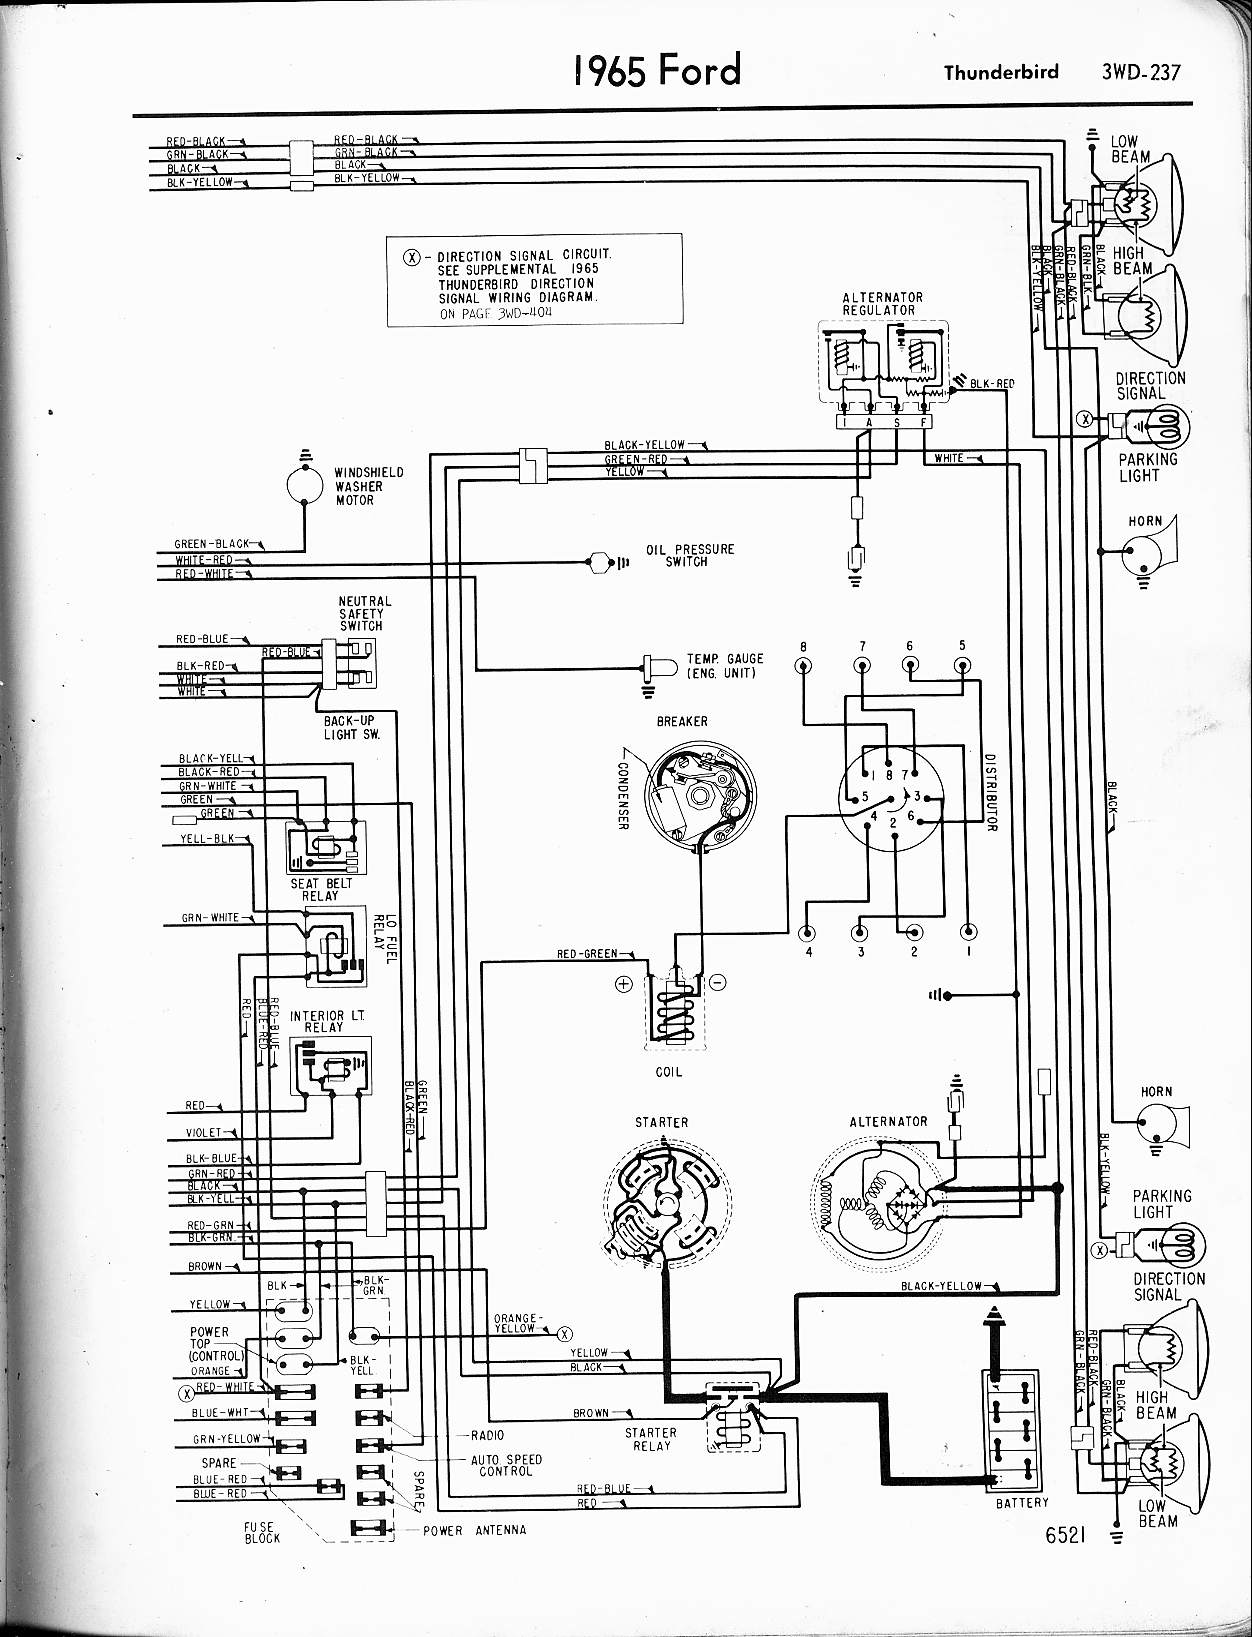 57-65 Ford Wiring Diagrams on harley golf cart manual, harley golf cart 2 stroke, harley golf cart cylinder head, harley golf cart repair, harley-davidson electrical diagram, yamaha golf cart governor diagram, harley golf cart carb adjustment, club car golf cart diagram, harley golf cart headlight, yamaha golf cart clutch diagram, harley golf cart tires, harley golf cart clutch diagram, golf cart electrical system diagram, harley golf cart frame, harley wiring diagrams pdf, golf cart carburetor diagram, harley golf cart exhaust, yamaha golf cart parts diagram, 12 volt parallel battery wiring diagram, harley golf cart engine,